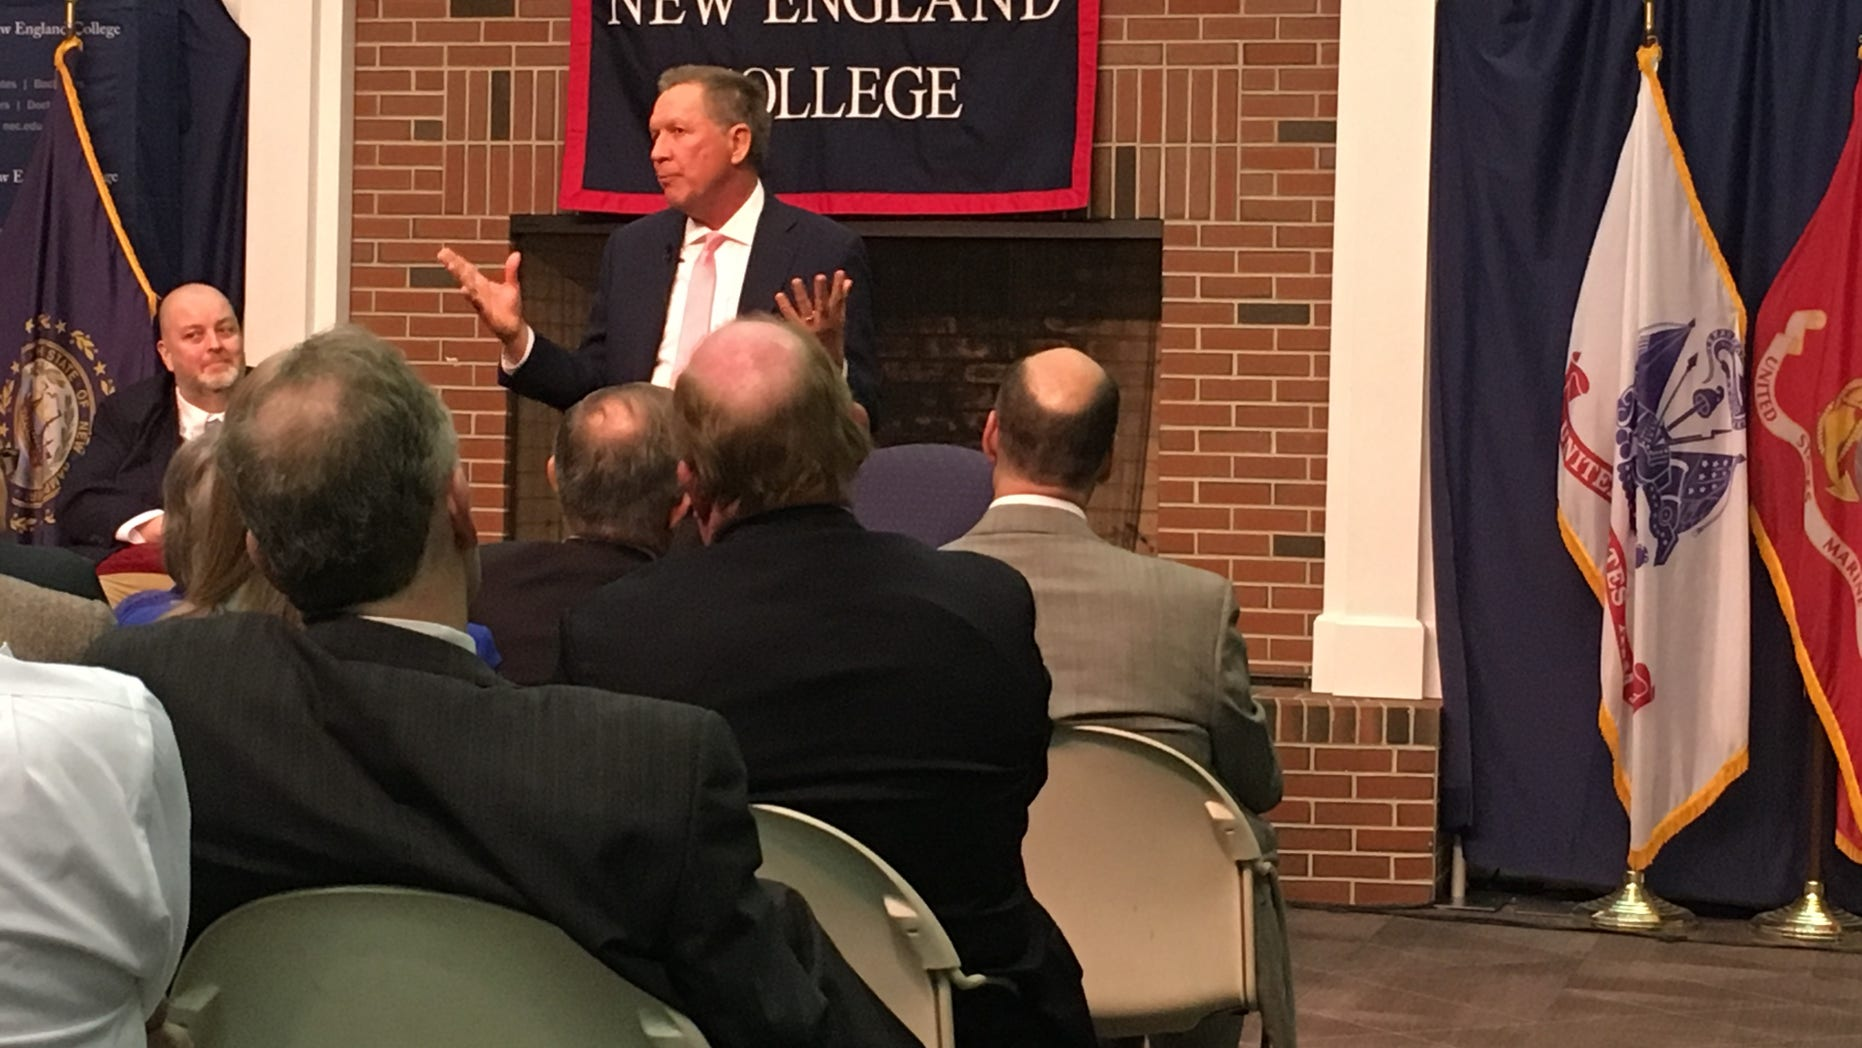 Ohio Gov. John Kasich, pictured in April, is back in New Hampshire. (Paul Steinhauser)